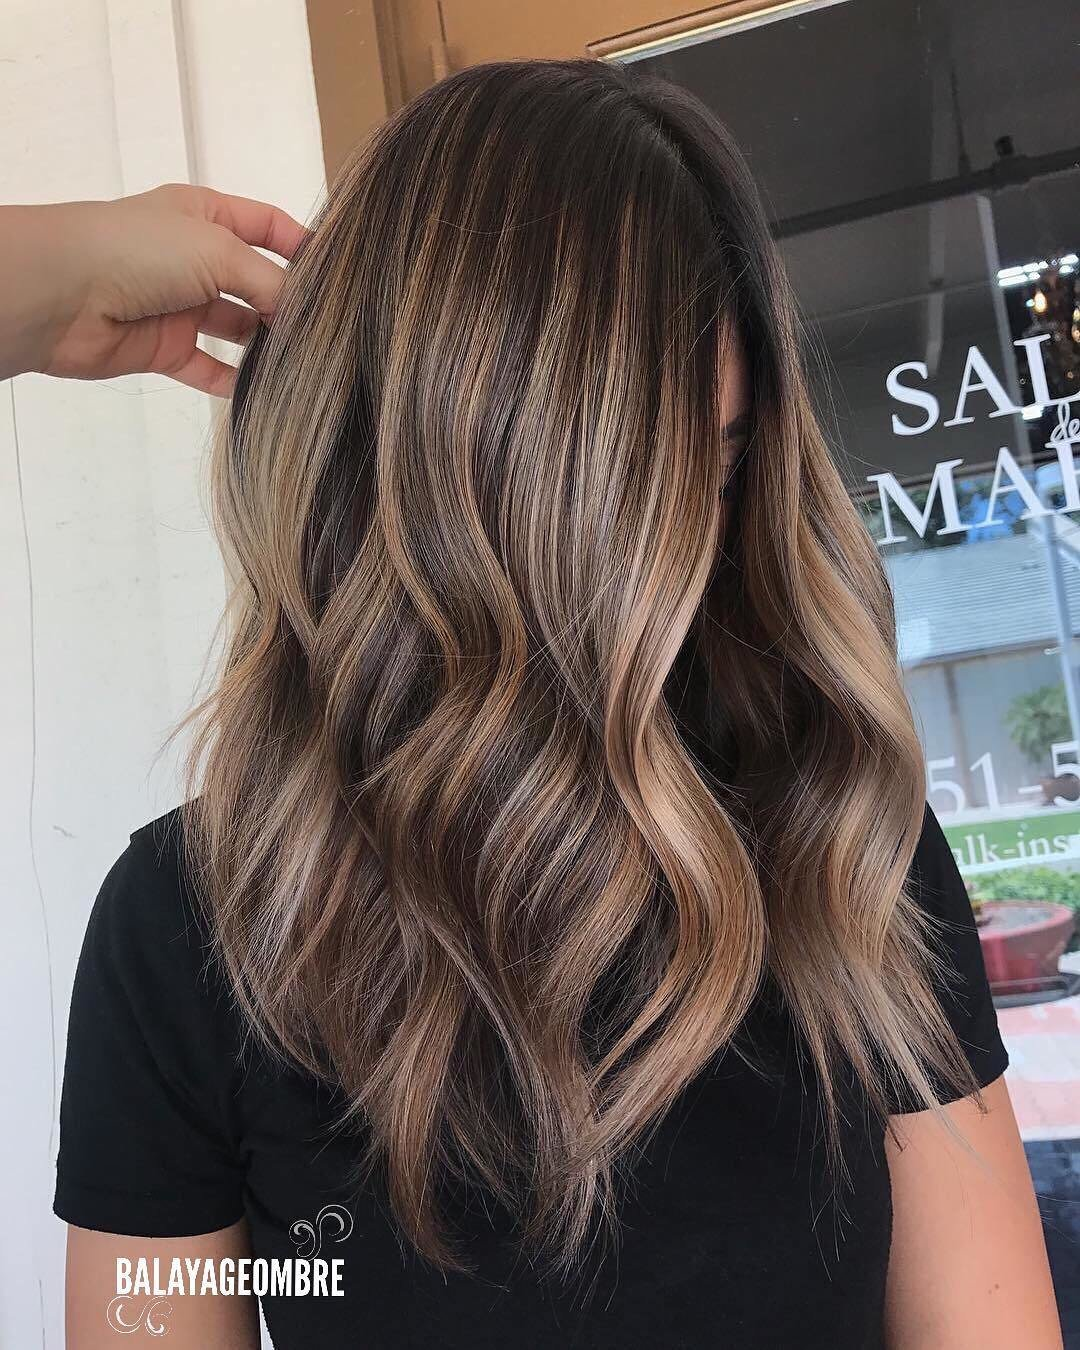 The Best 10 Best Medium Layered Hairstyles 2019 Brown Ash Blonde Fashion Colors Pictures